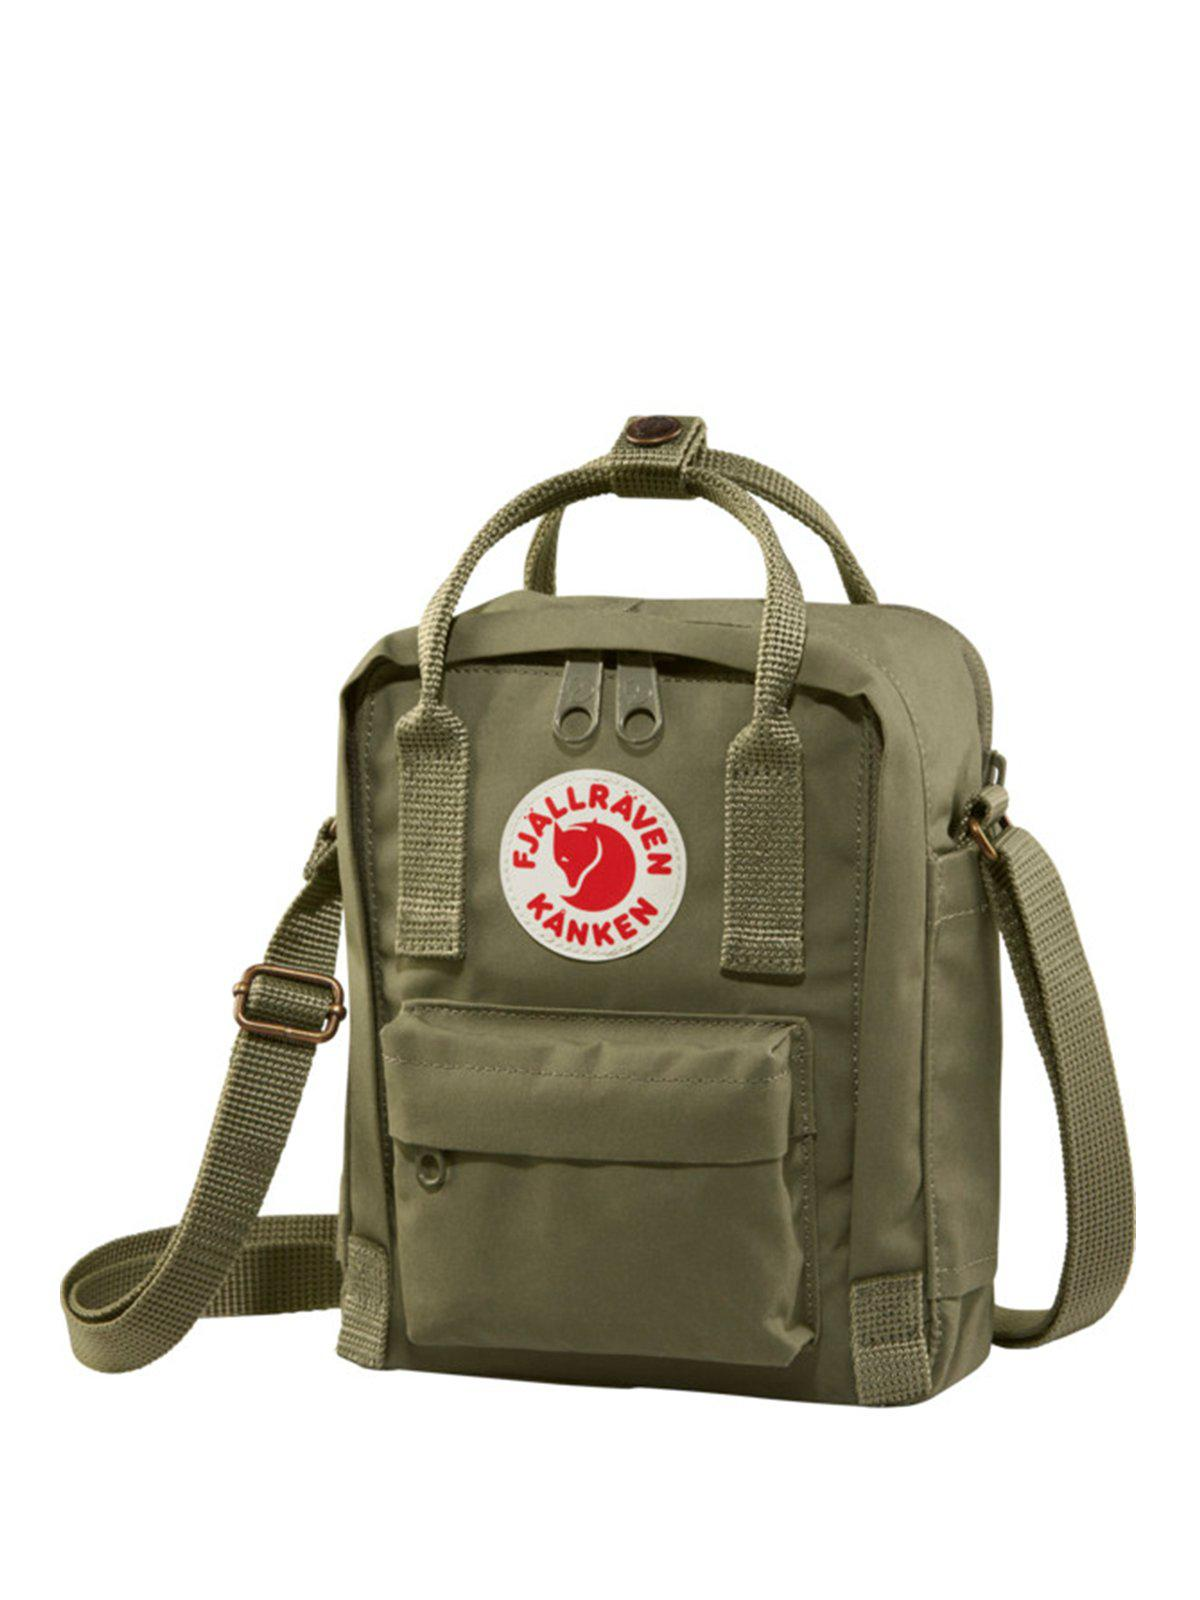 Fjallraven Kanken Sling Bag Green - MORE by Morello Indonesia